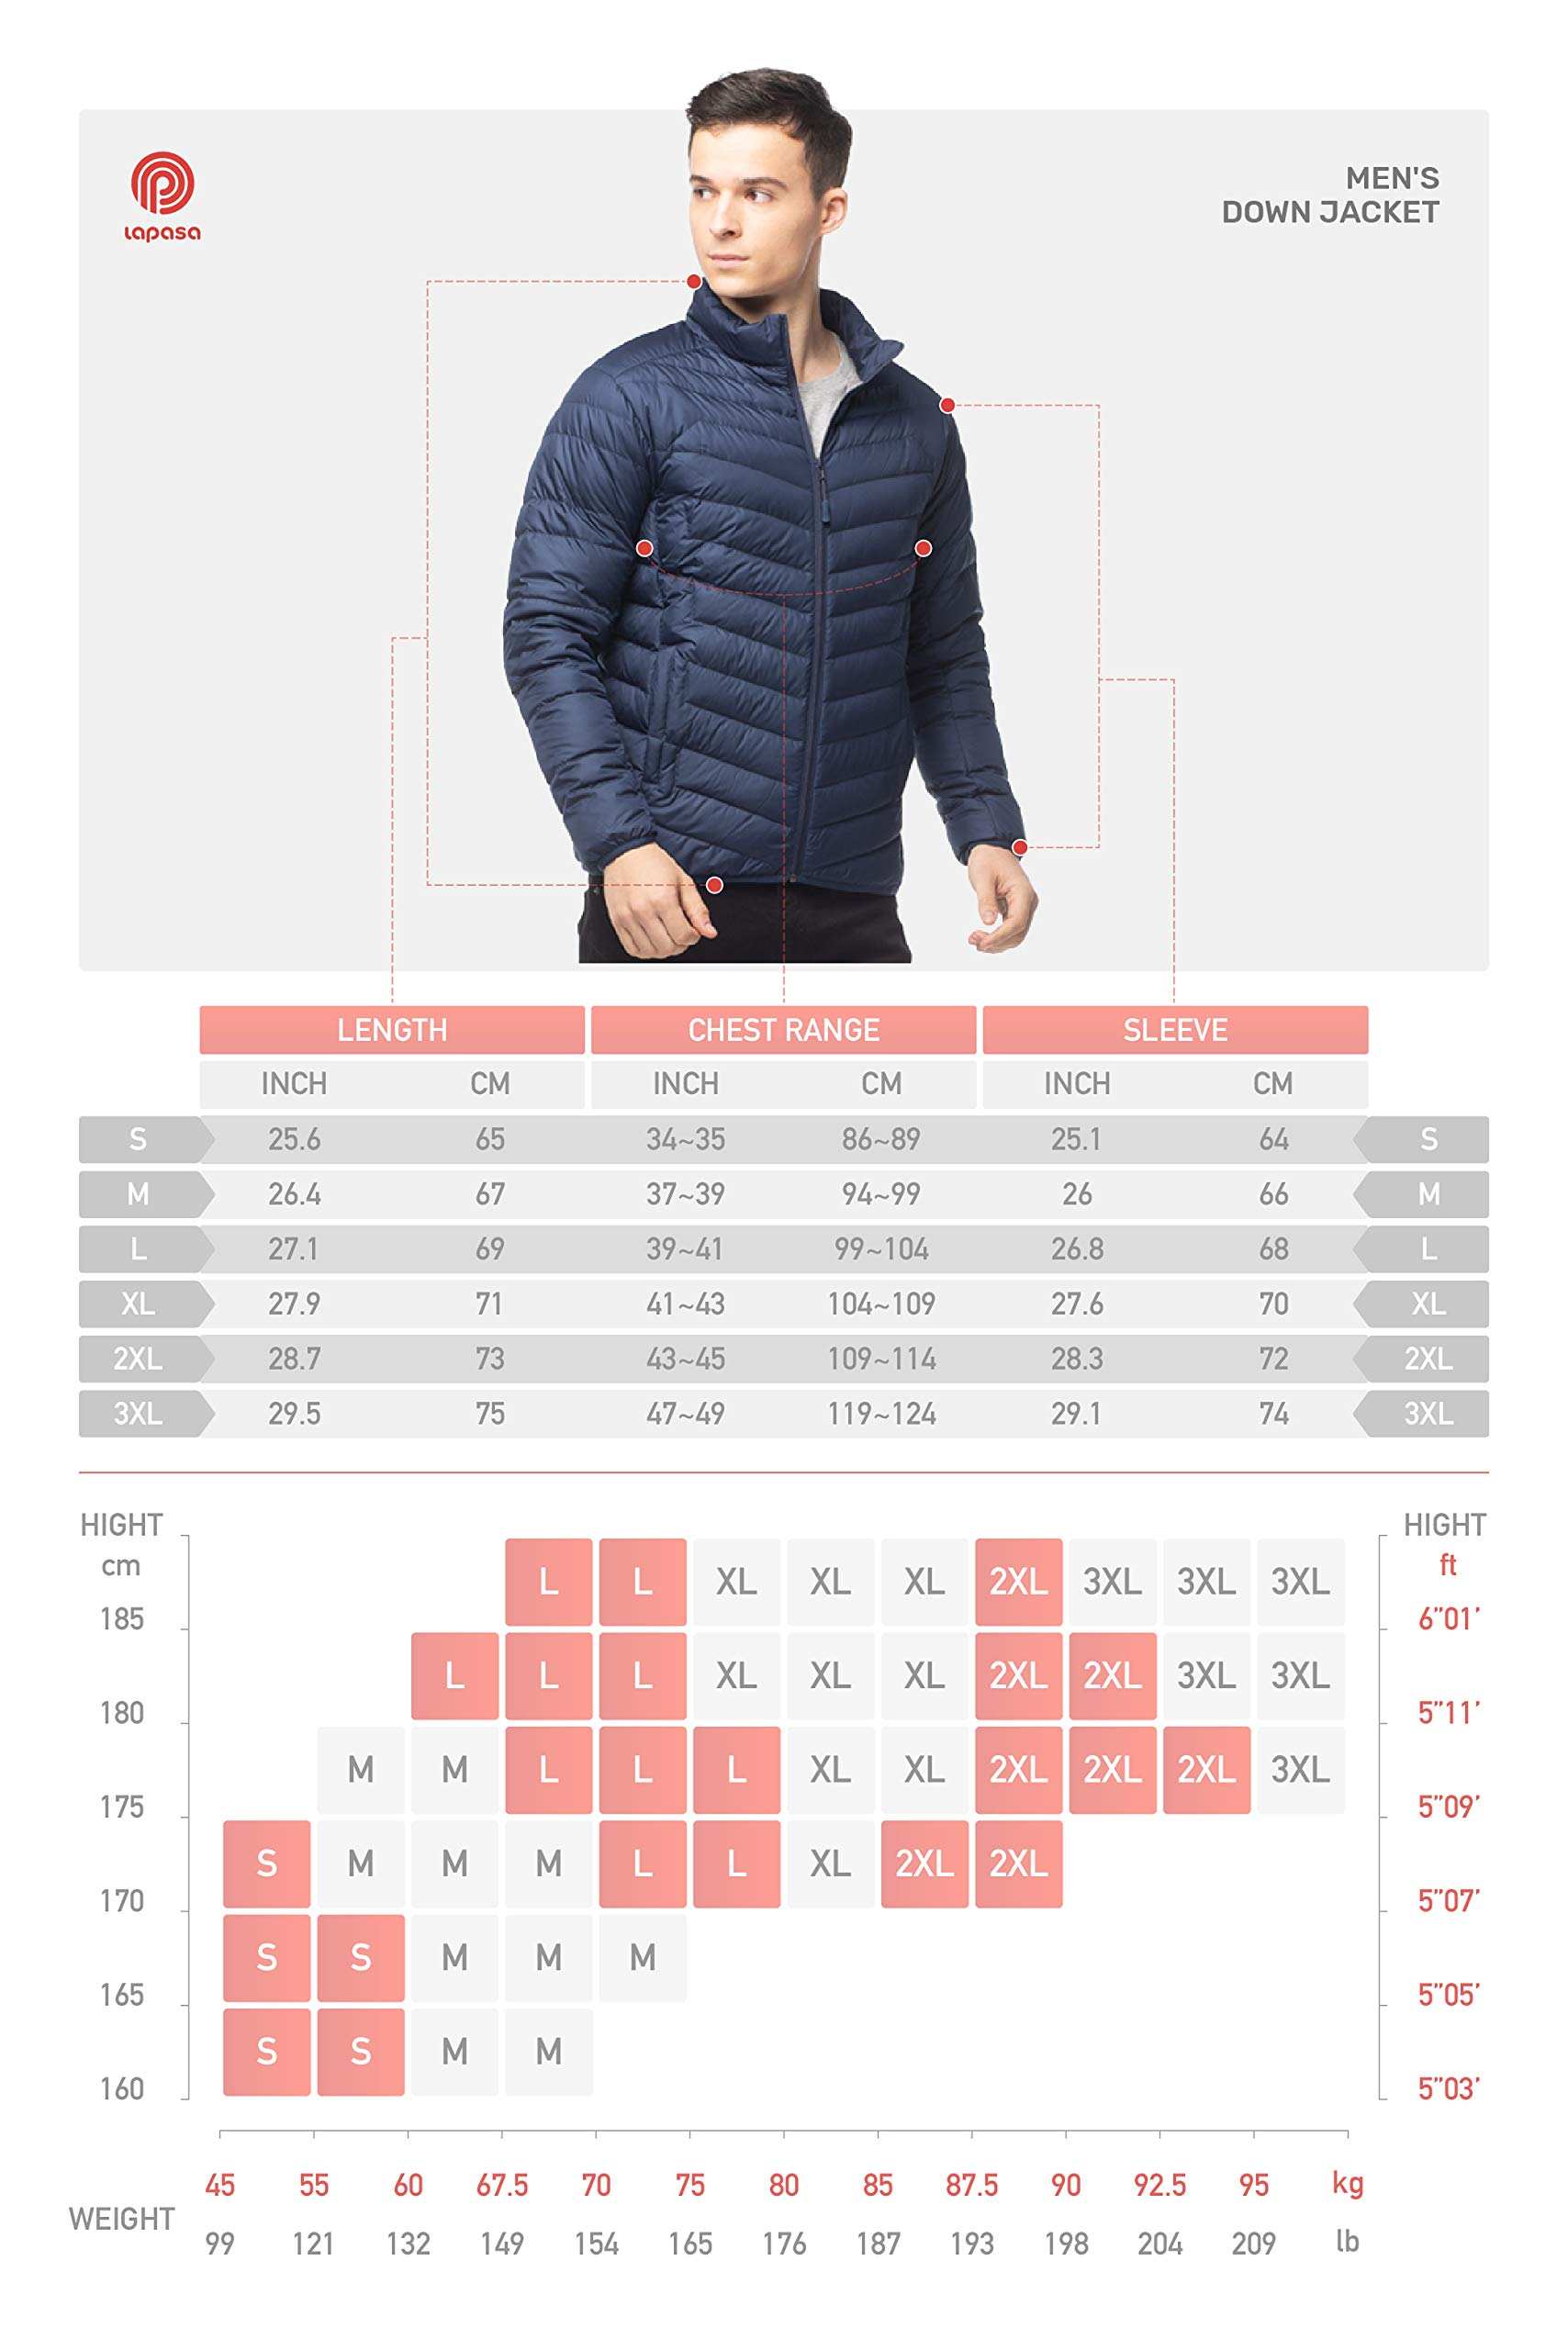 LAPASA Men's Down Jacket 600FP Packable Down Filled Jacket with Side Pockets YKK Zipped Men's Outdoor Winter Down Coats for Travel Hiking Climbing Skiing Casual M32 4